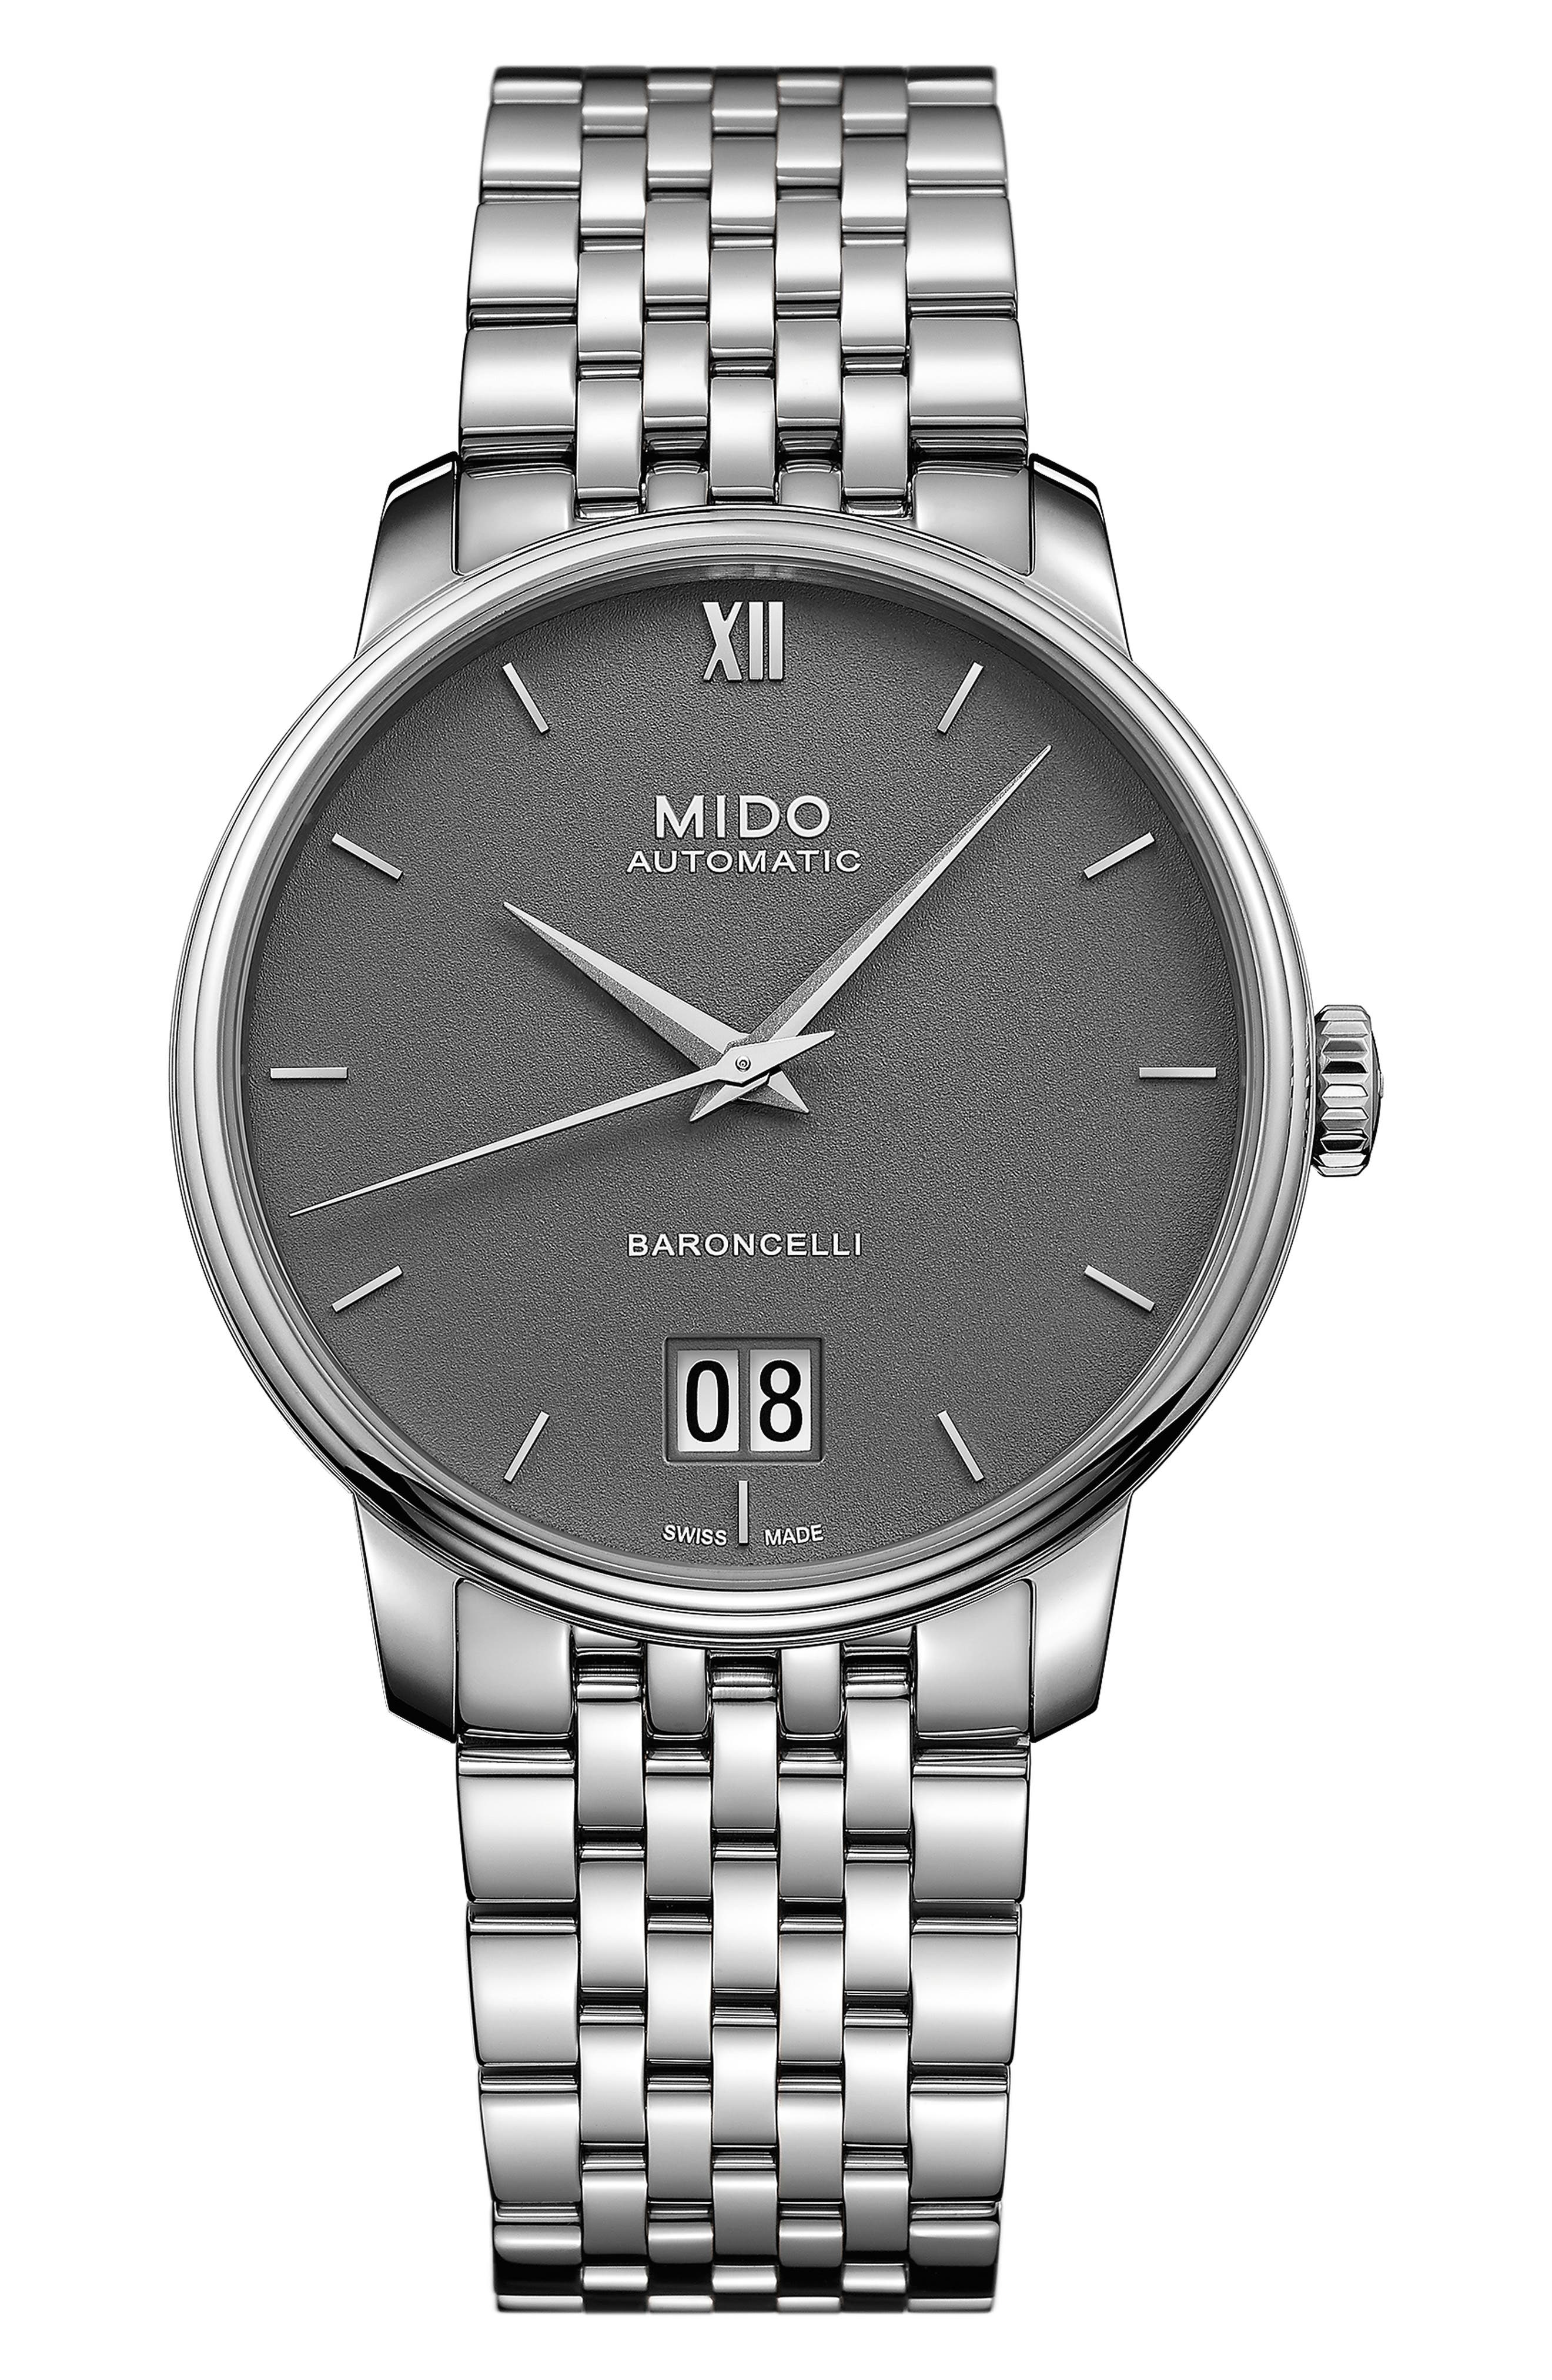 MIDO Baroncelli Iii Automatic Bracelet Watch in Silver/ Grey/ Silver